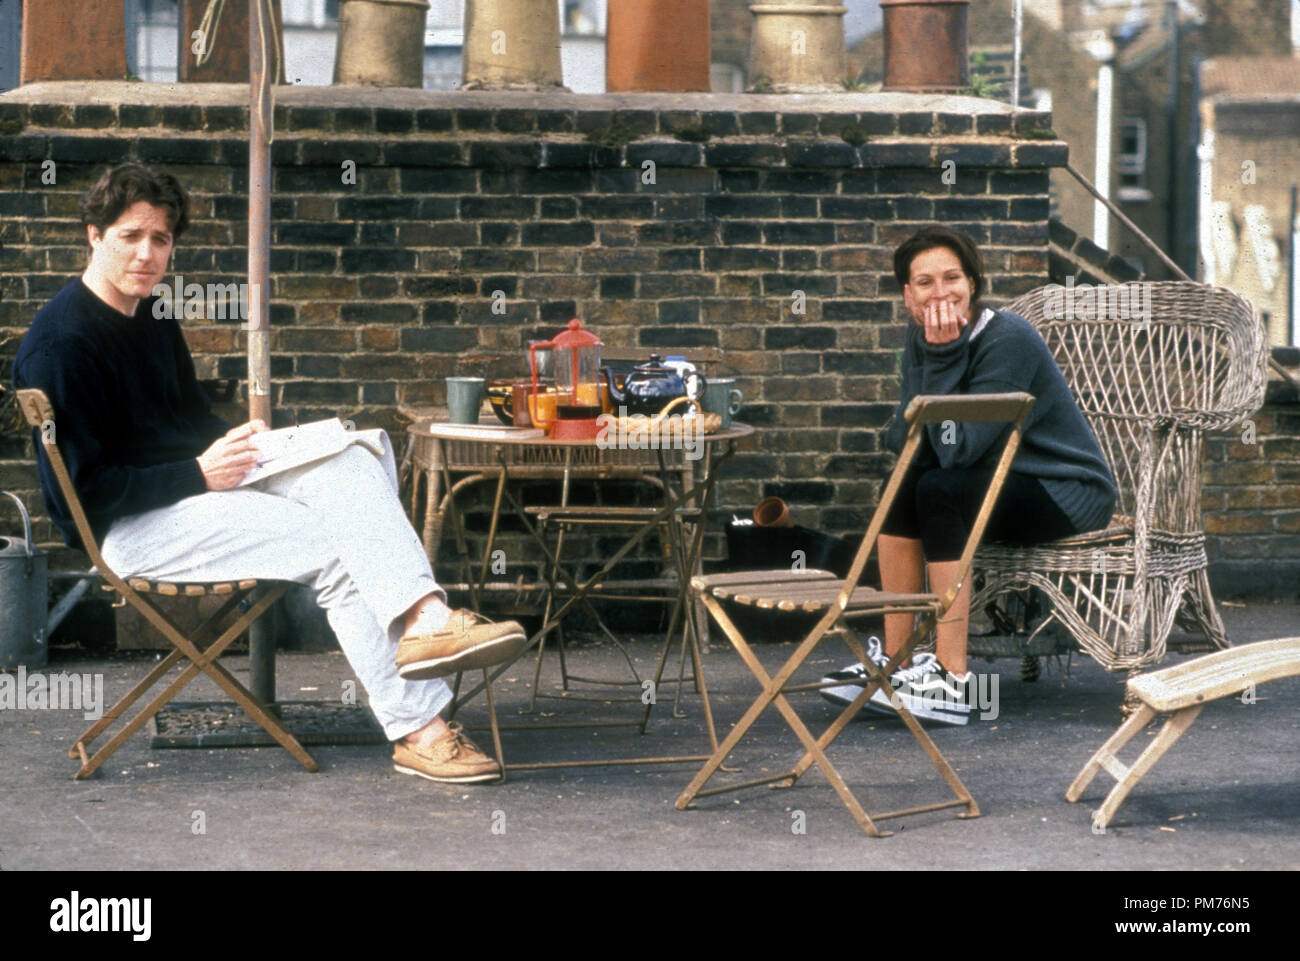 Film Still / Publicity Still from 'Notting Hill' Hugh Grant, Julia Roberts © 1999 Universal Photo Credit: Clive Coote   File Reference # 30973484THA  For Editorial Use Only -  All Rights Reserved - Stock Image